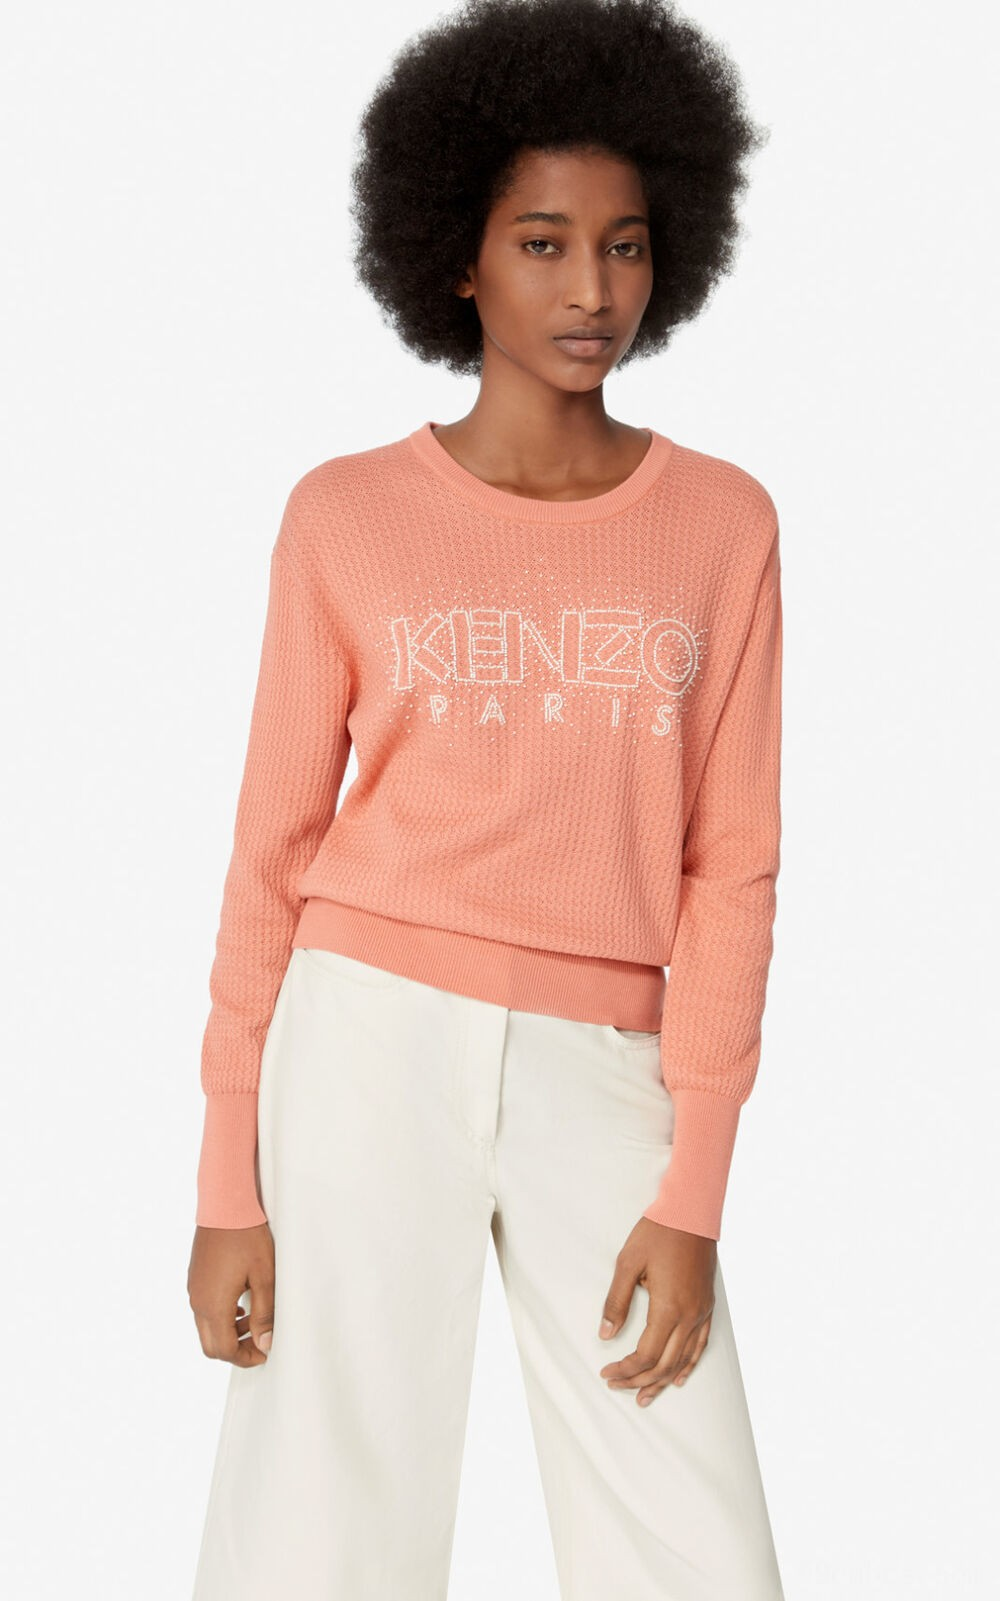 Pullover KENZO Paris - apricot